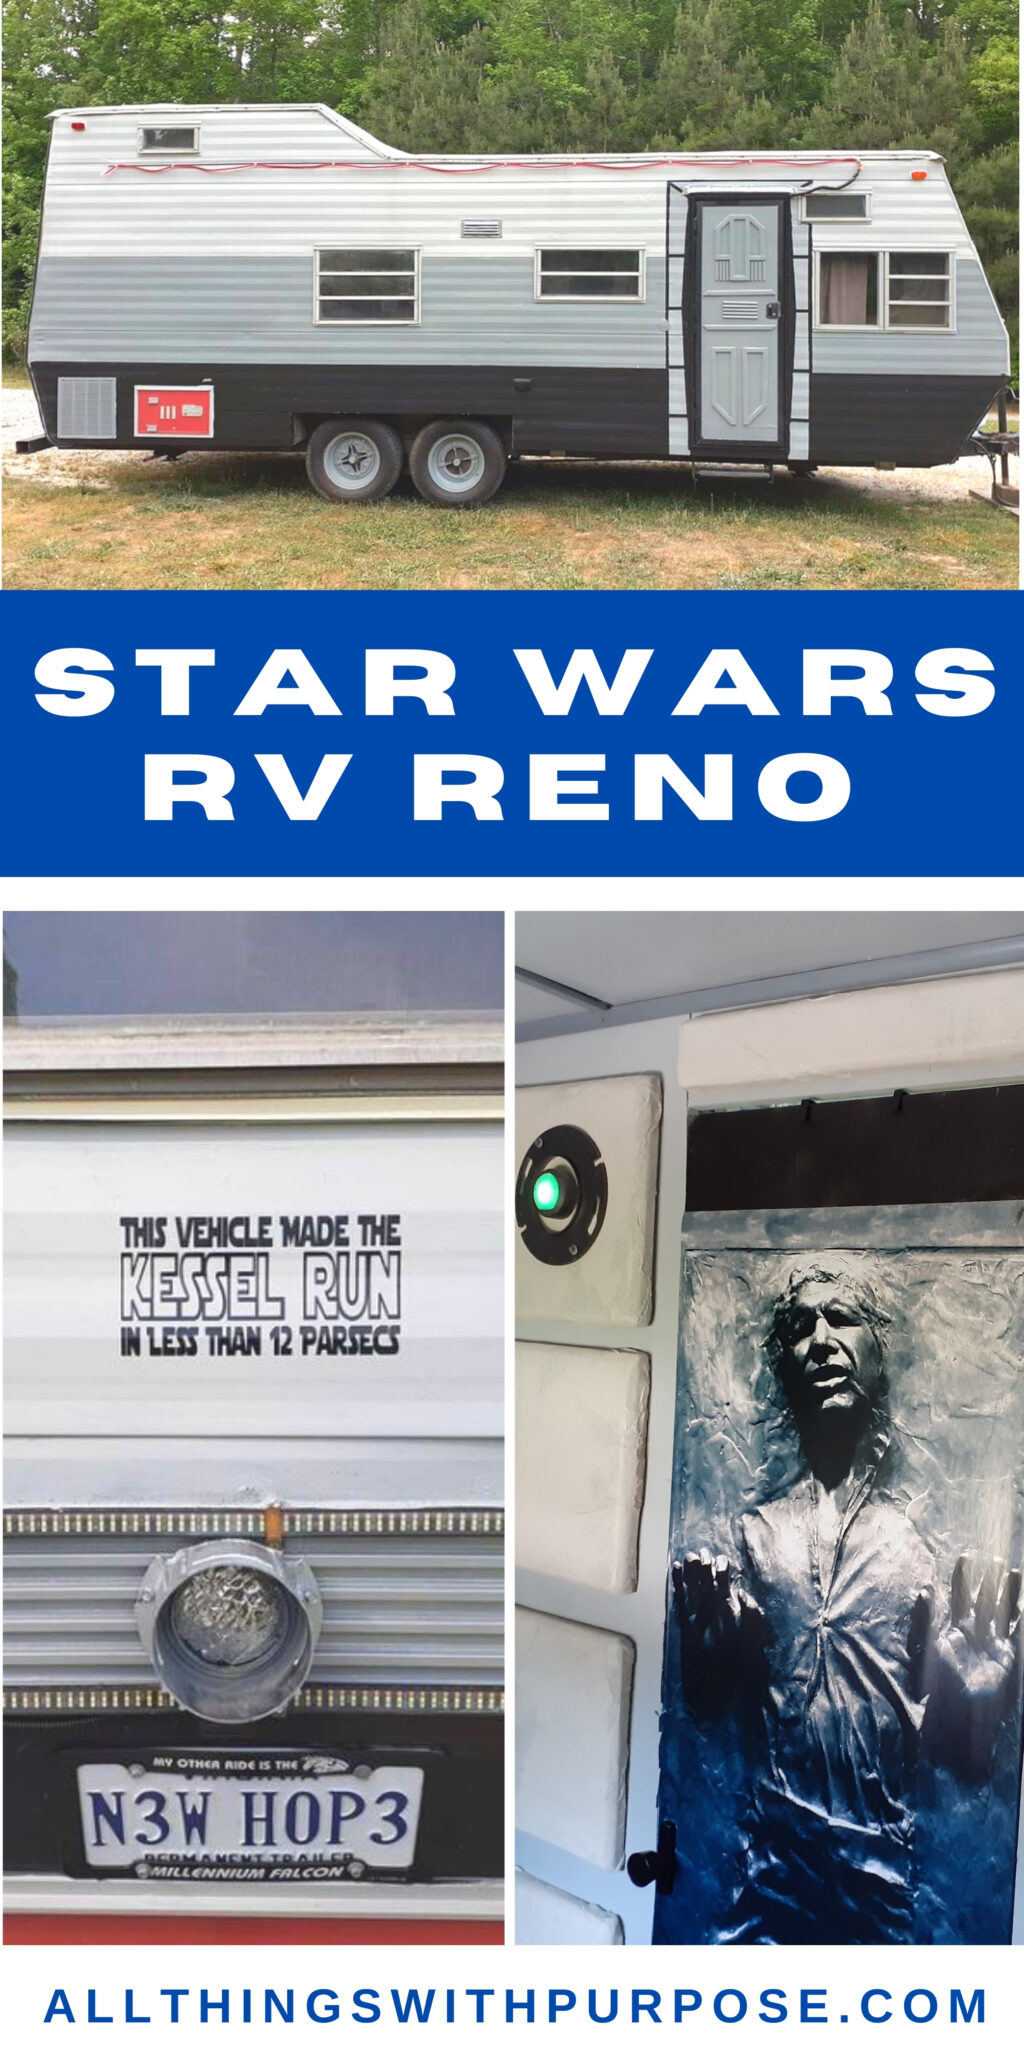 You Have to See This Amazing Star Wars Themed RV Reno All Things with Purpose Sarah Lemp 8